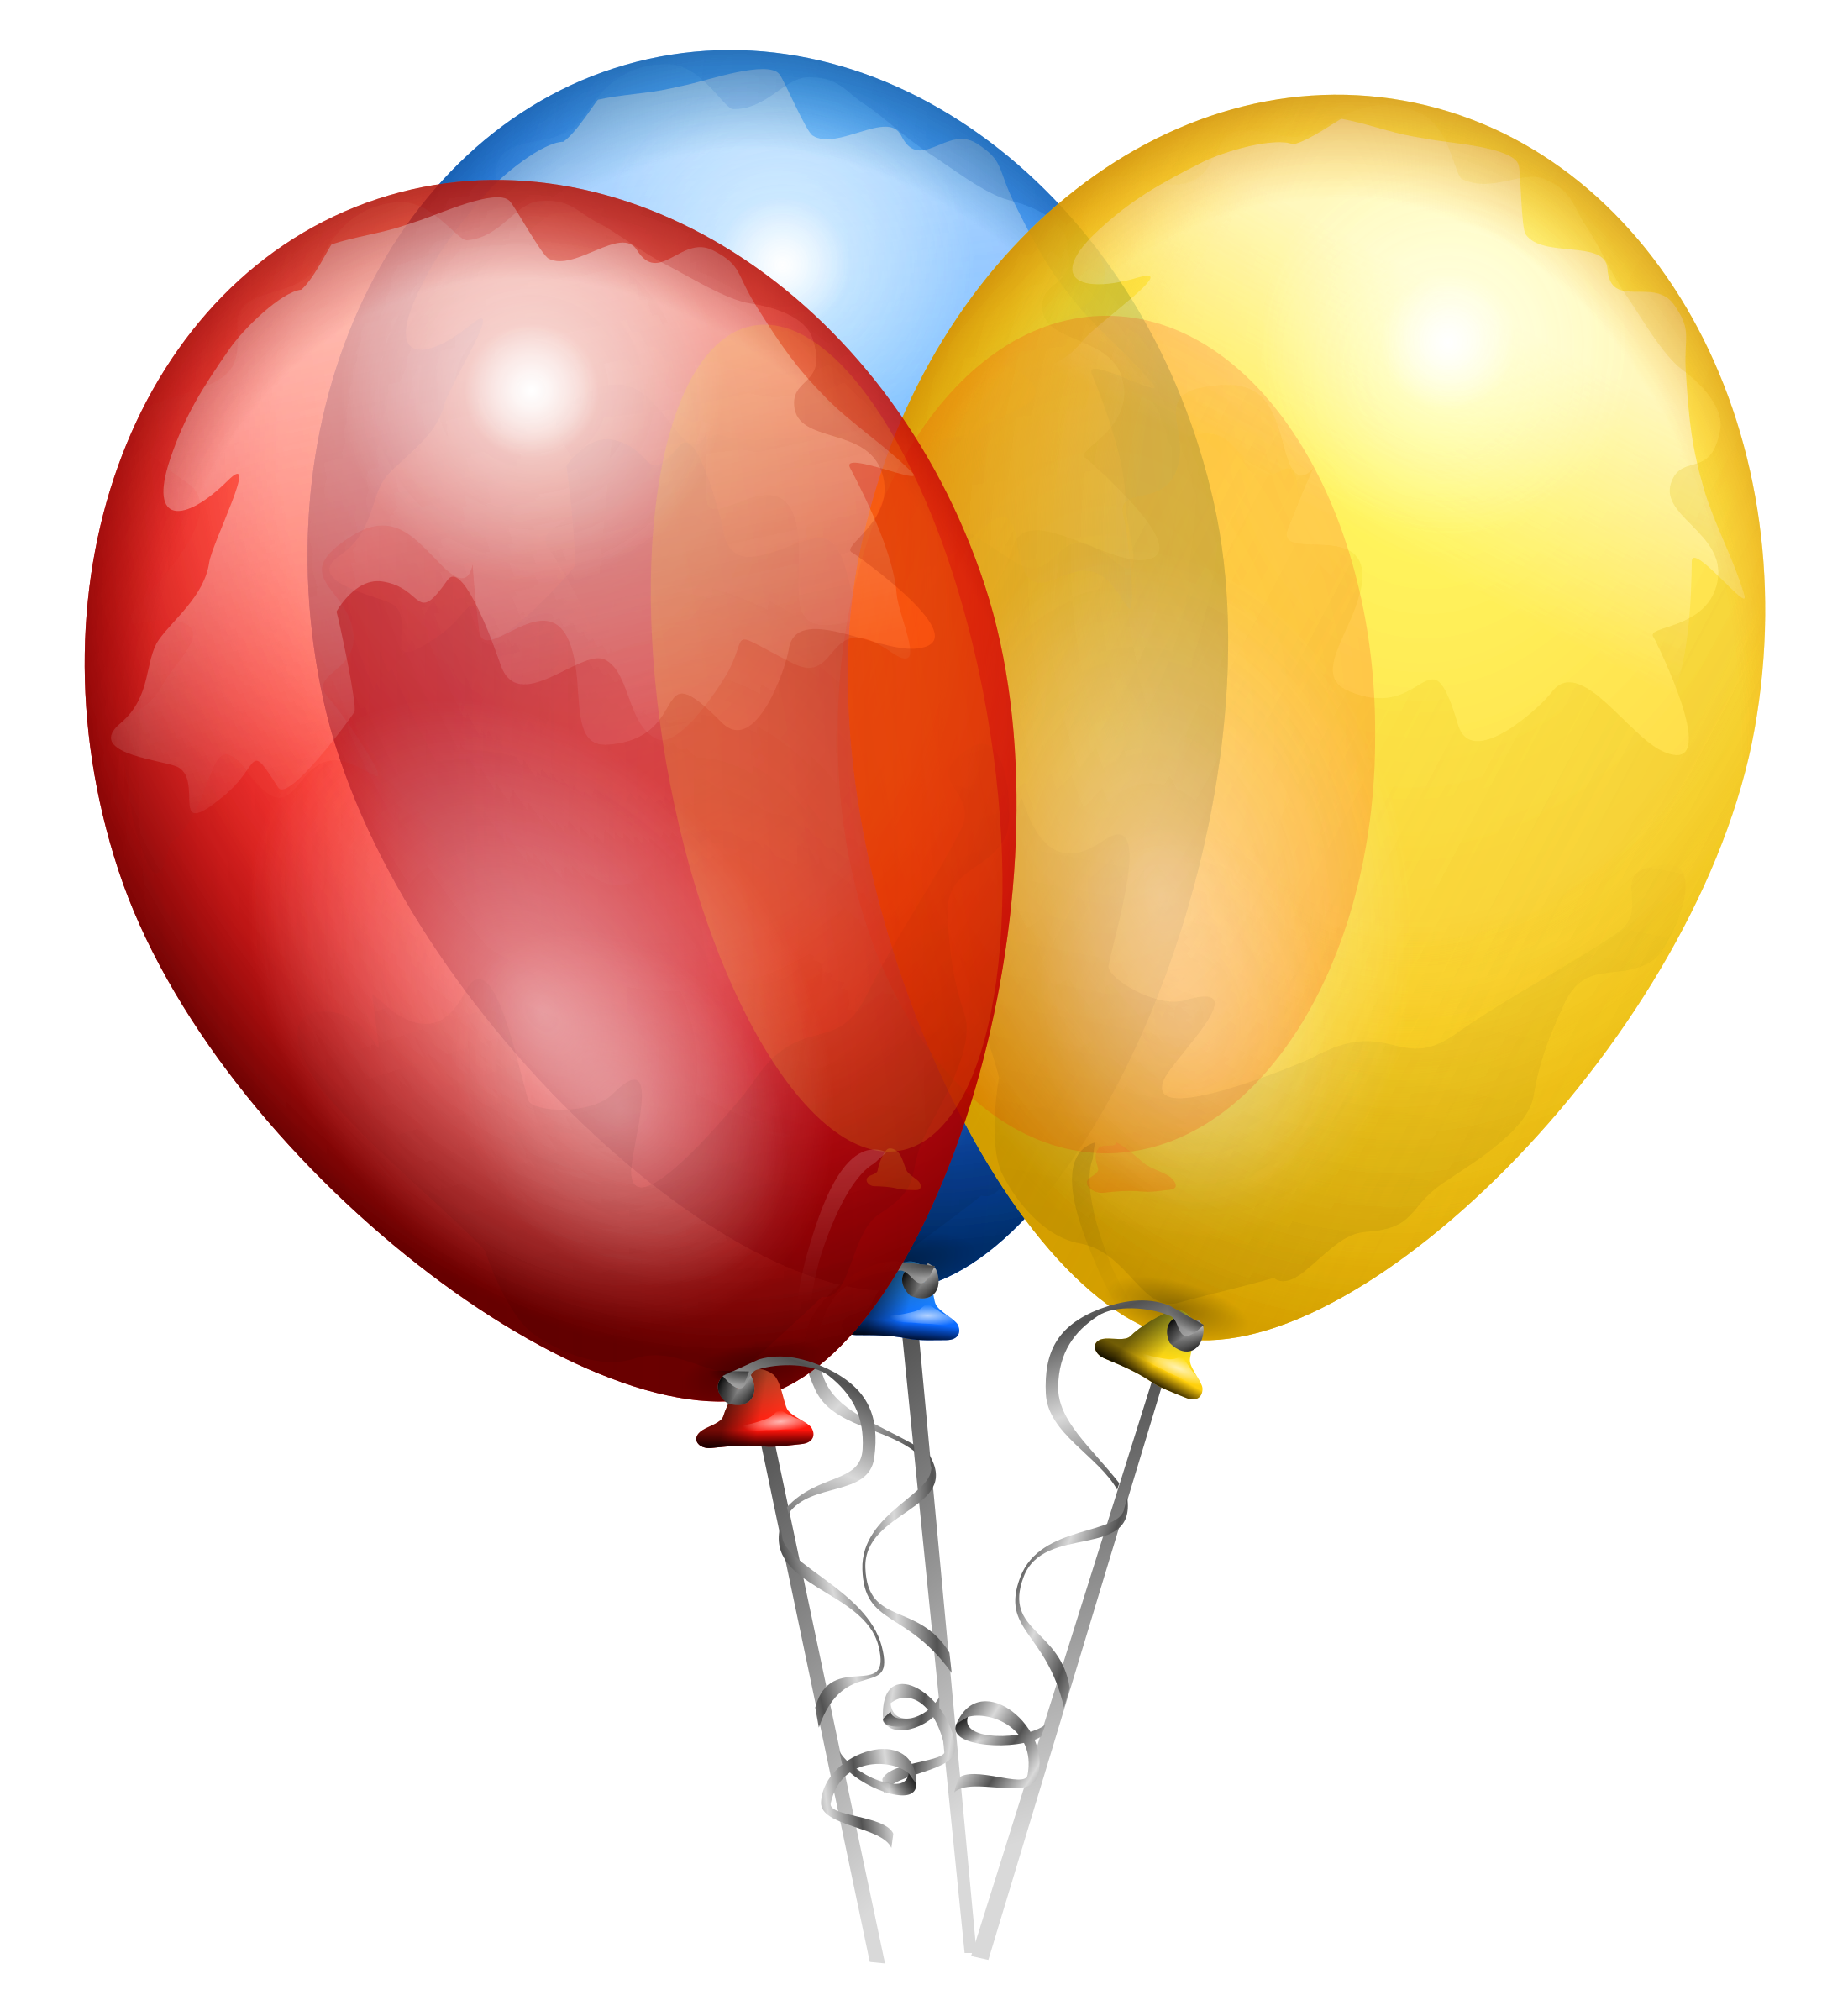 Party ballons png. Balloons icons free and